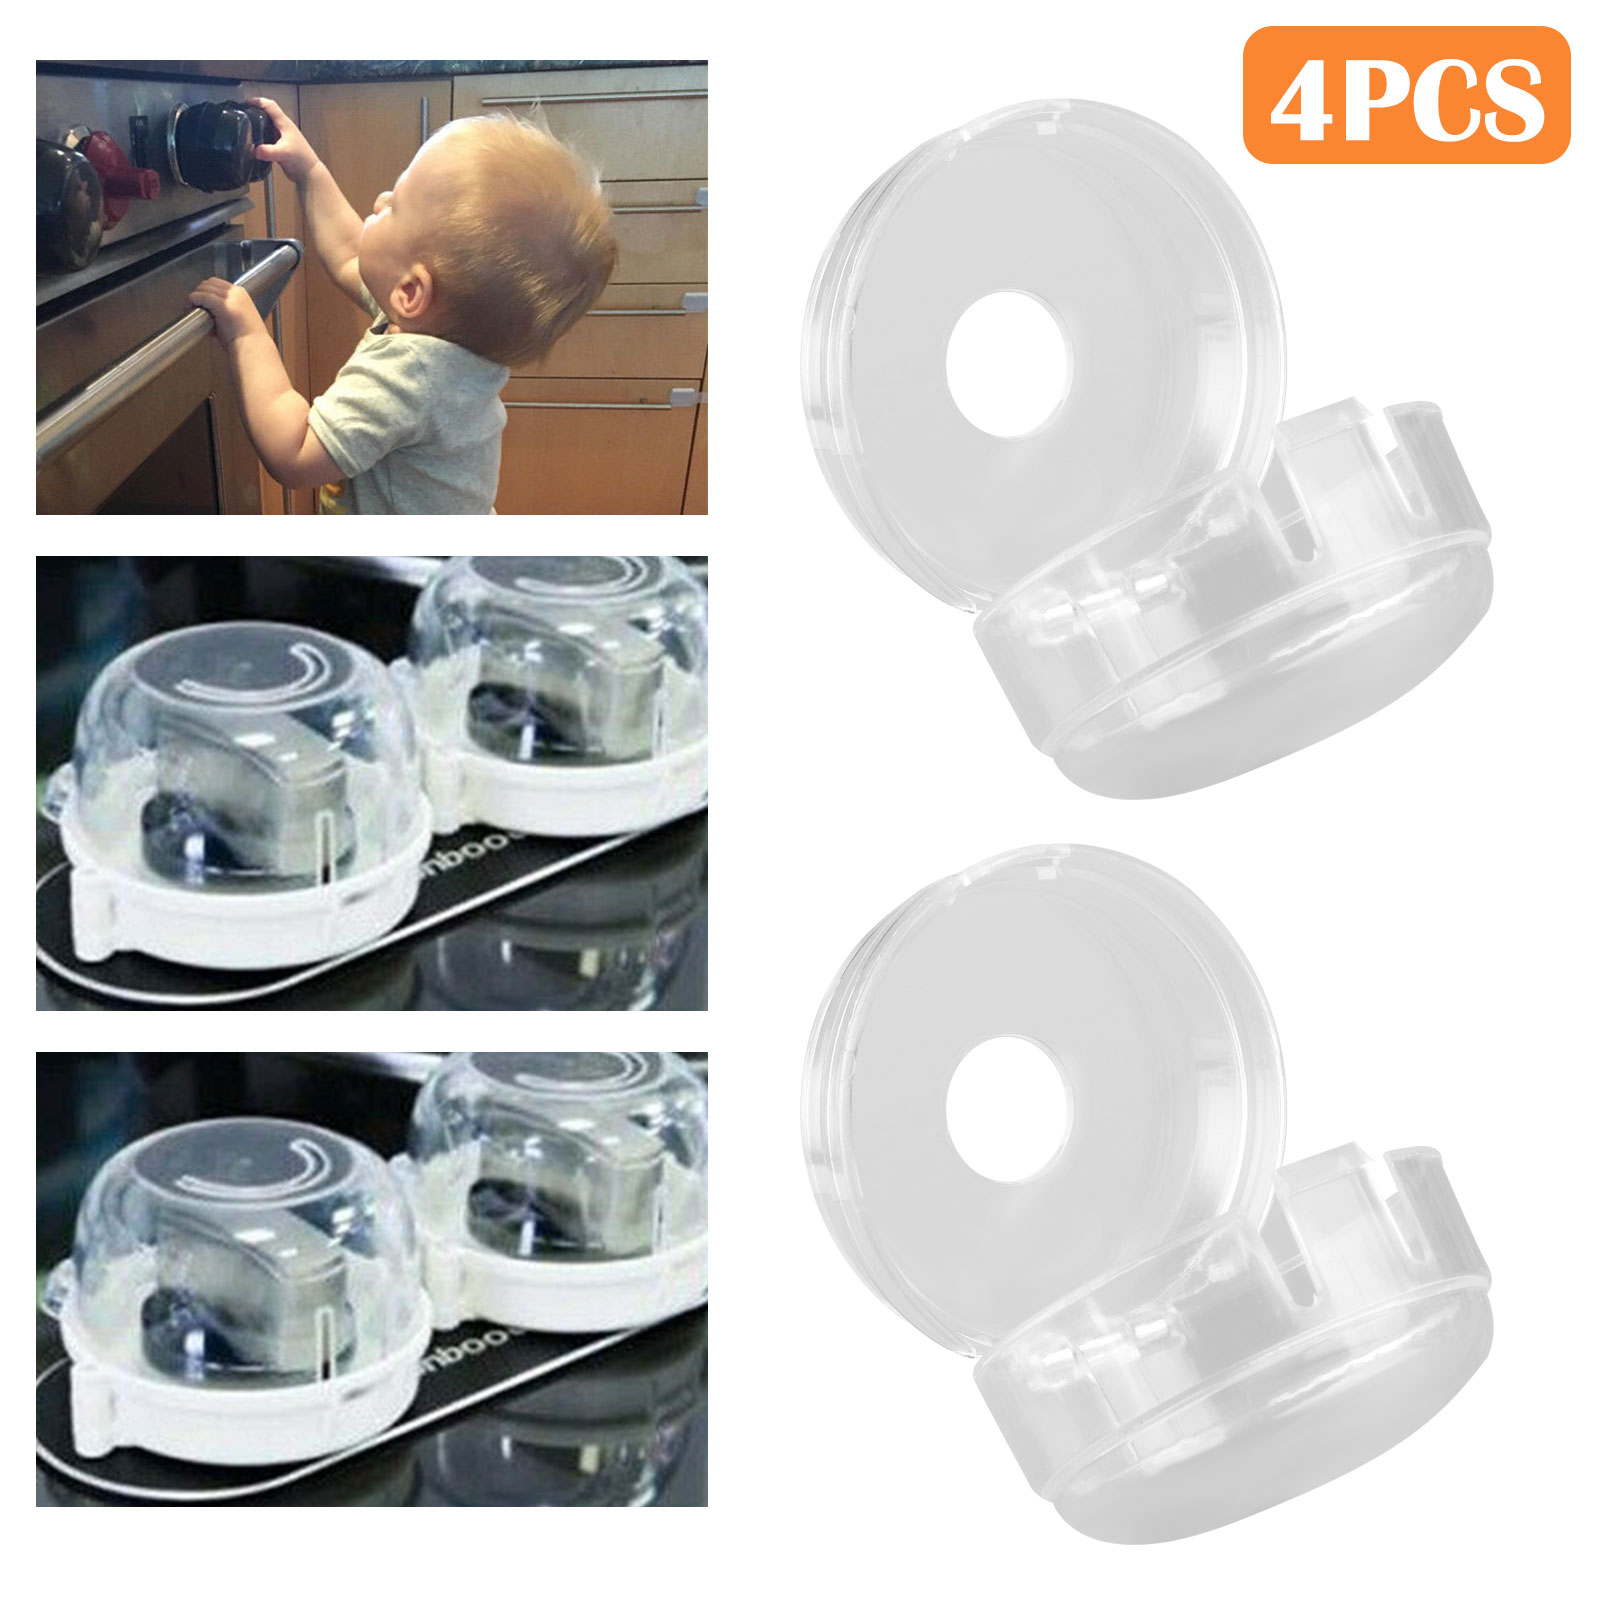 Universal Oven & Stove Knob Covers Clear View Child Baby Kit